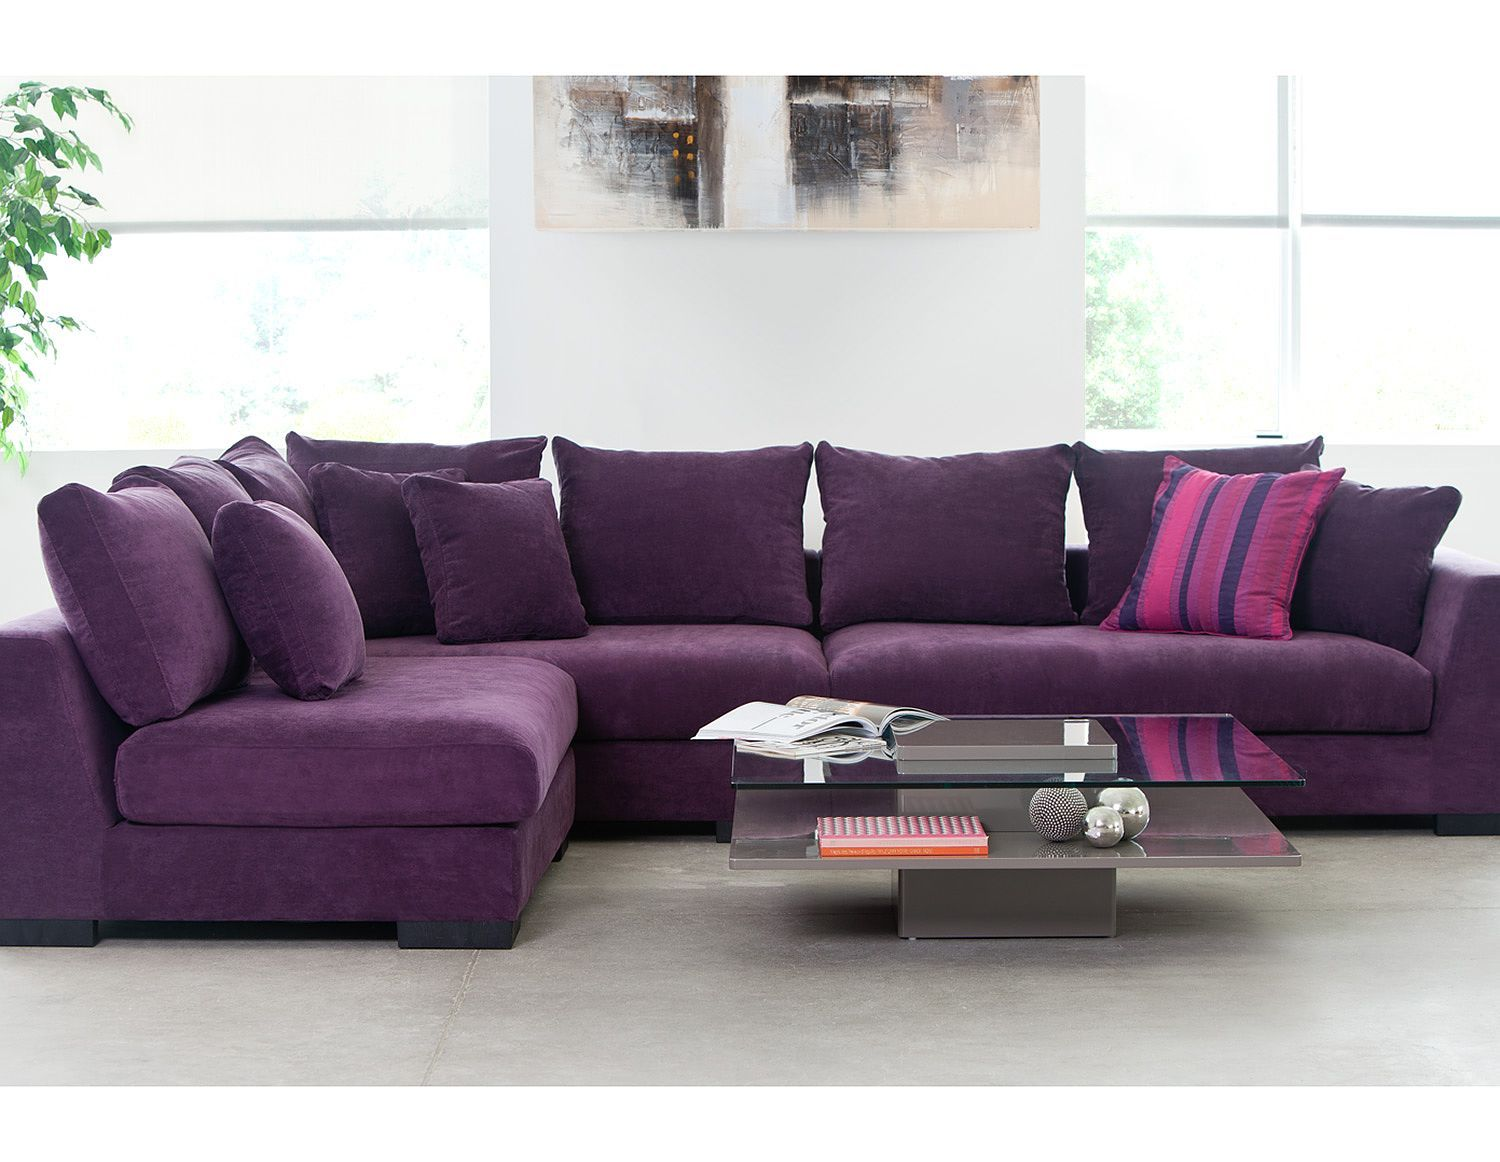 Living room sectional sofas cooper purple faints a for Purple sofa